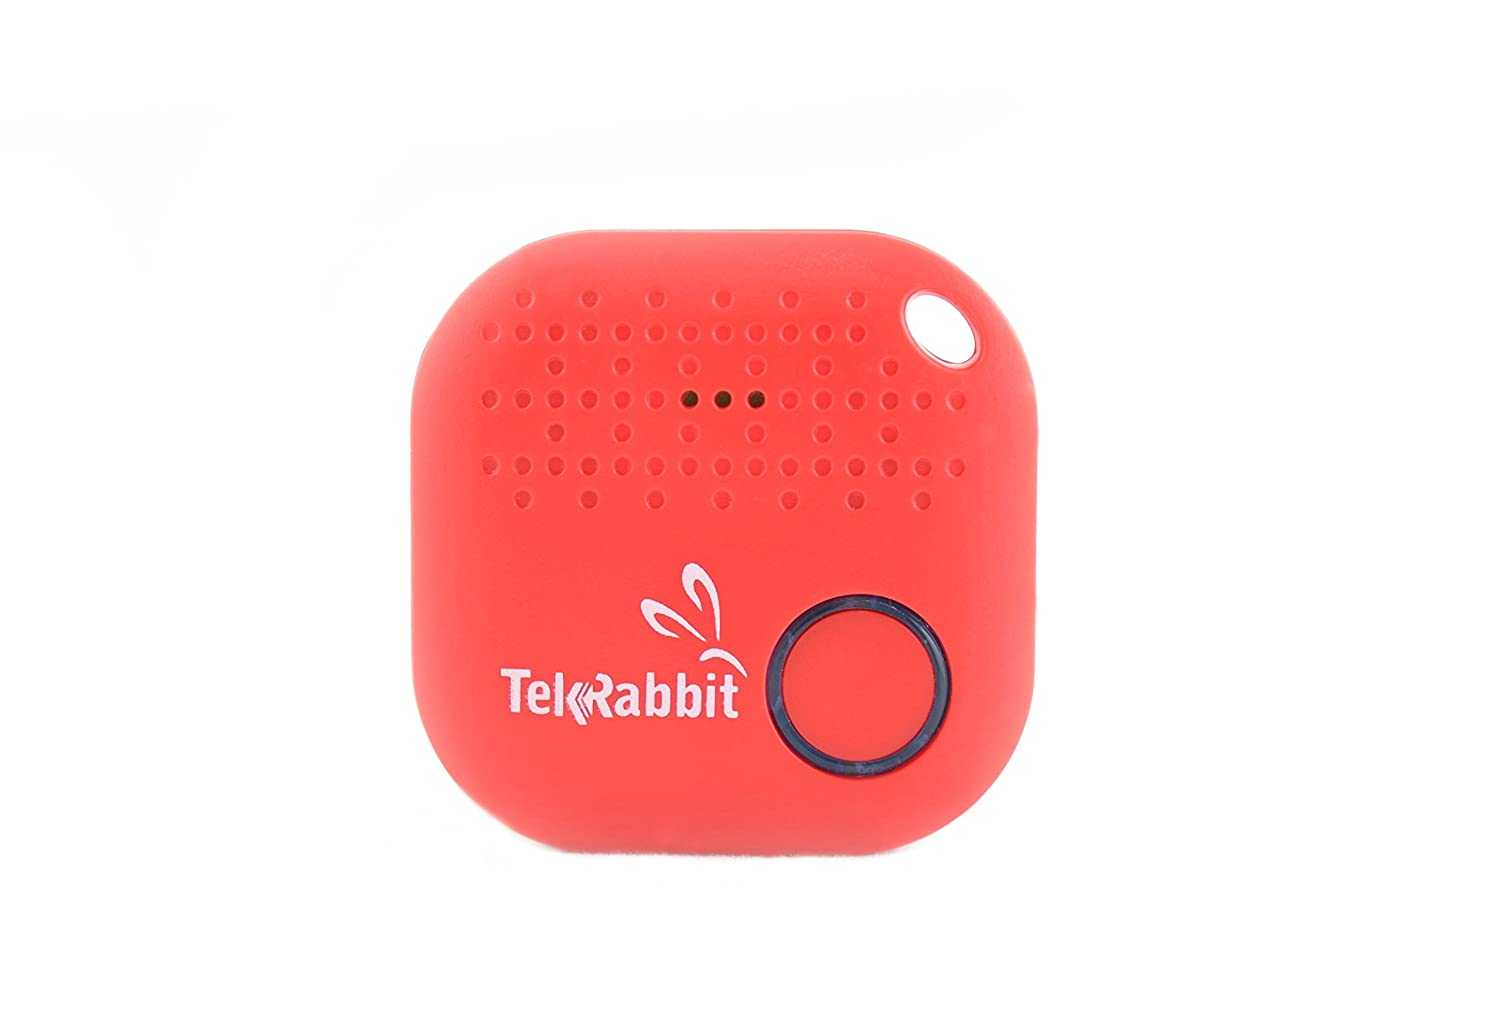 Smart Tracker - Find Your Keys, Phone, Luggage or Anything (red) TekRabbit Life Accessories Inc.